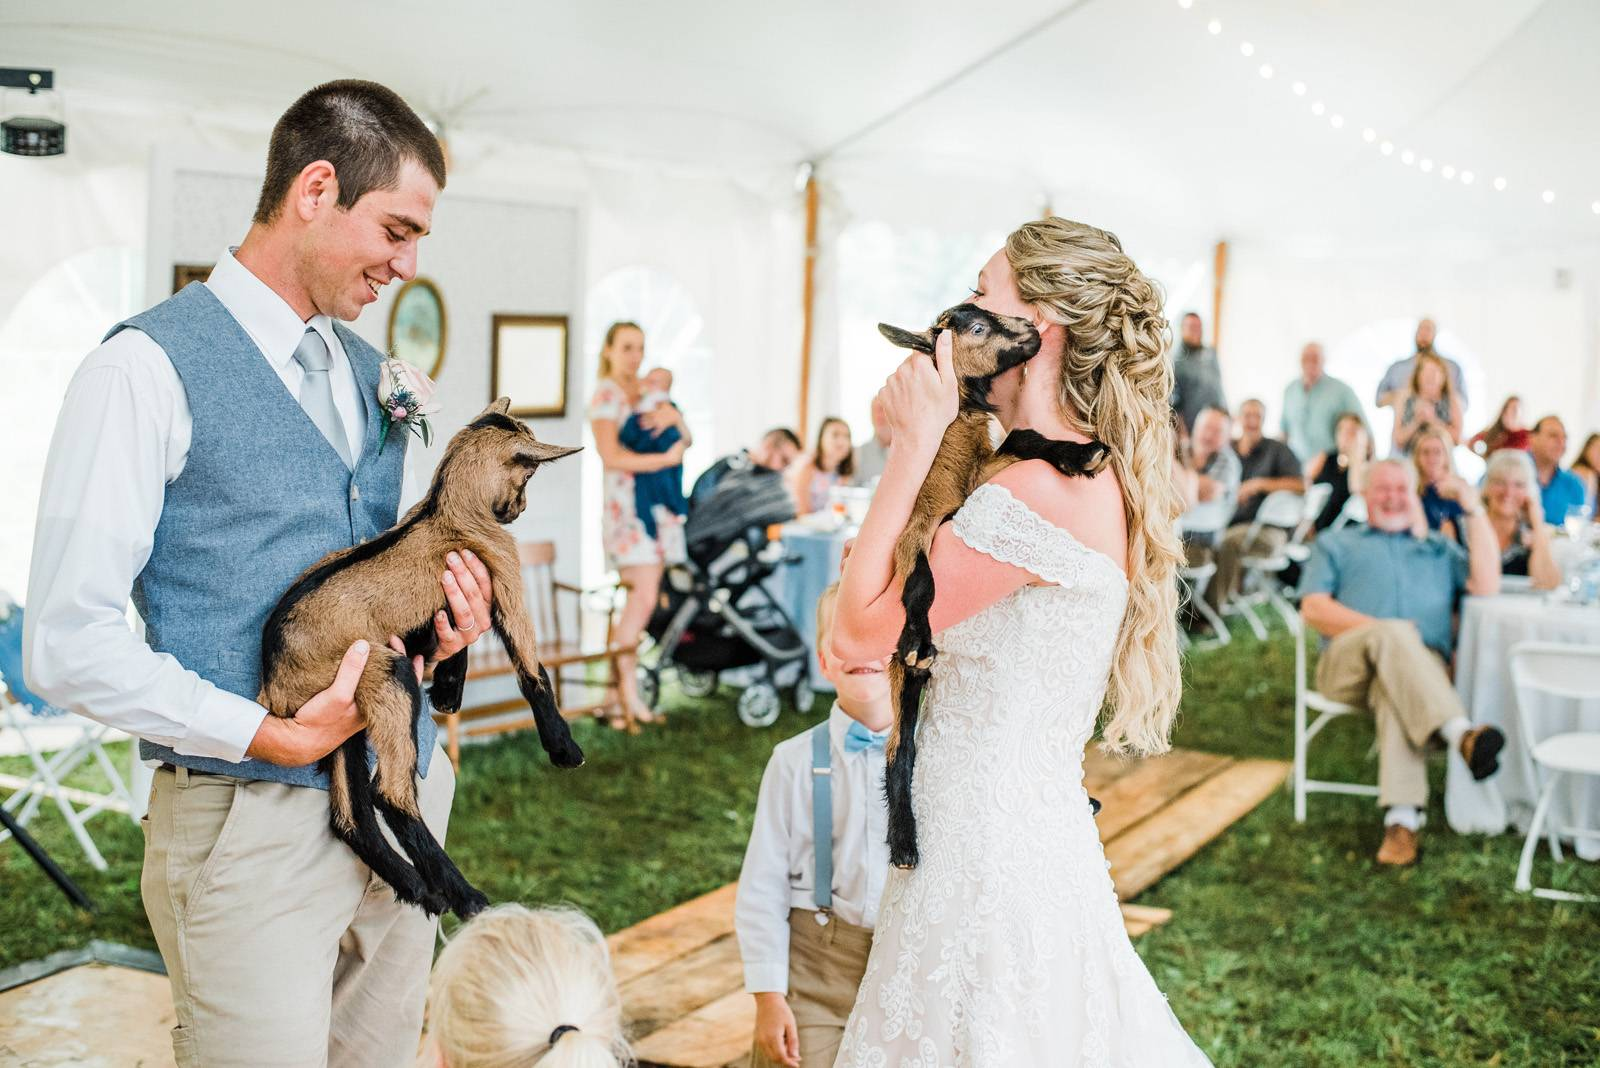 Couple surprised by baby goats at wedding reception